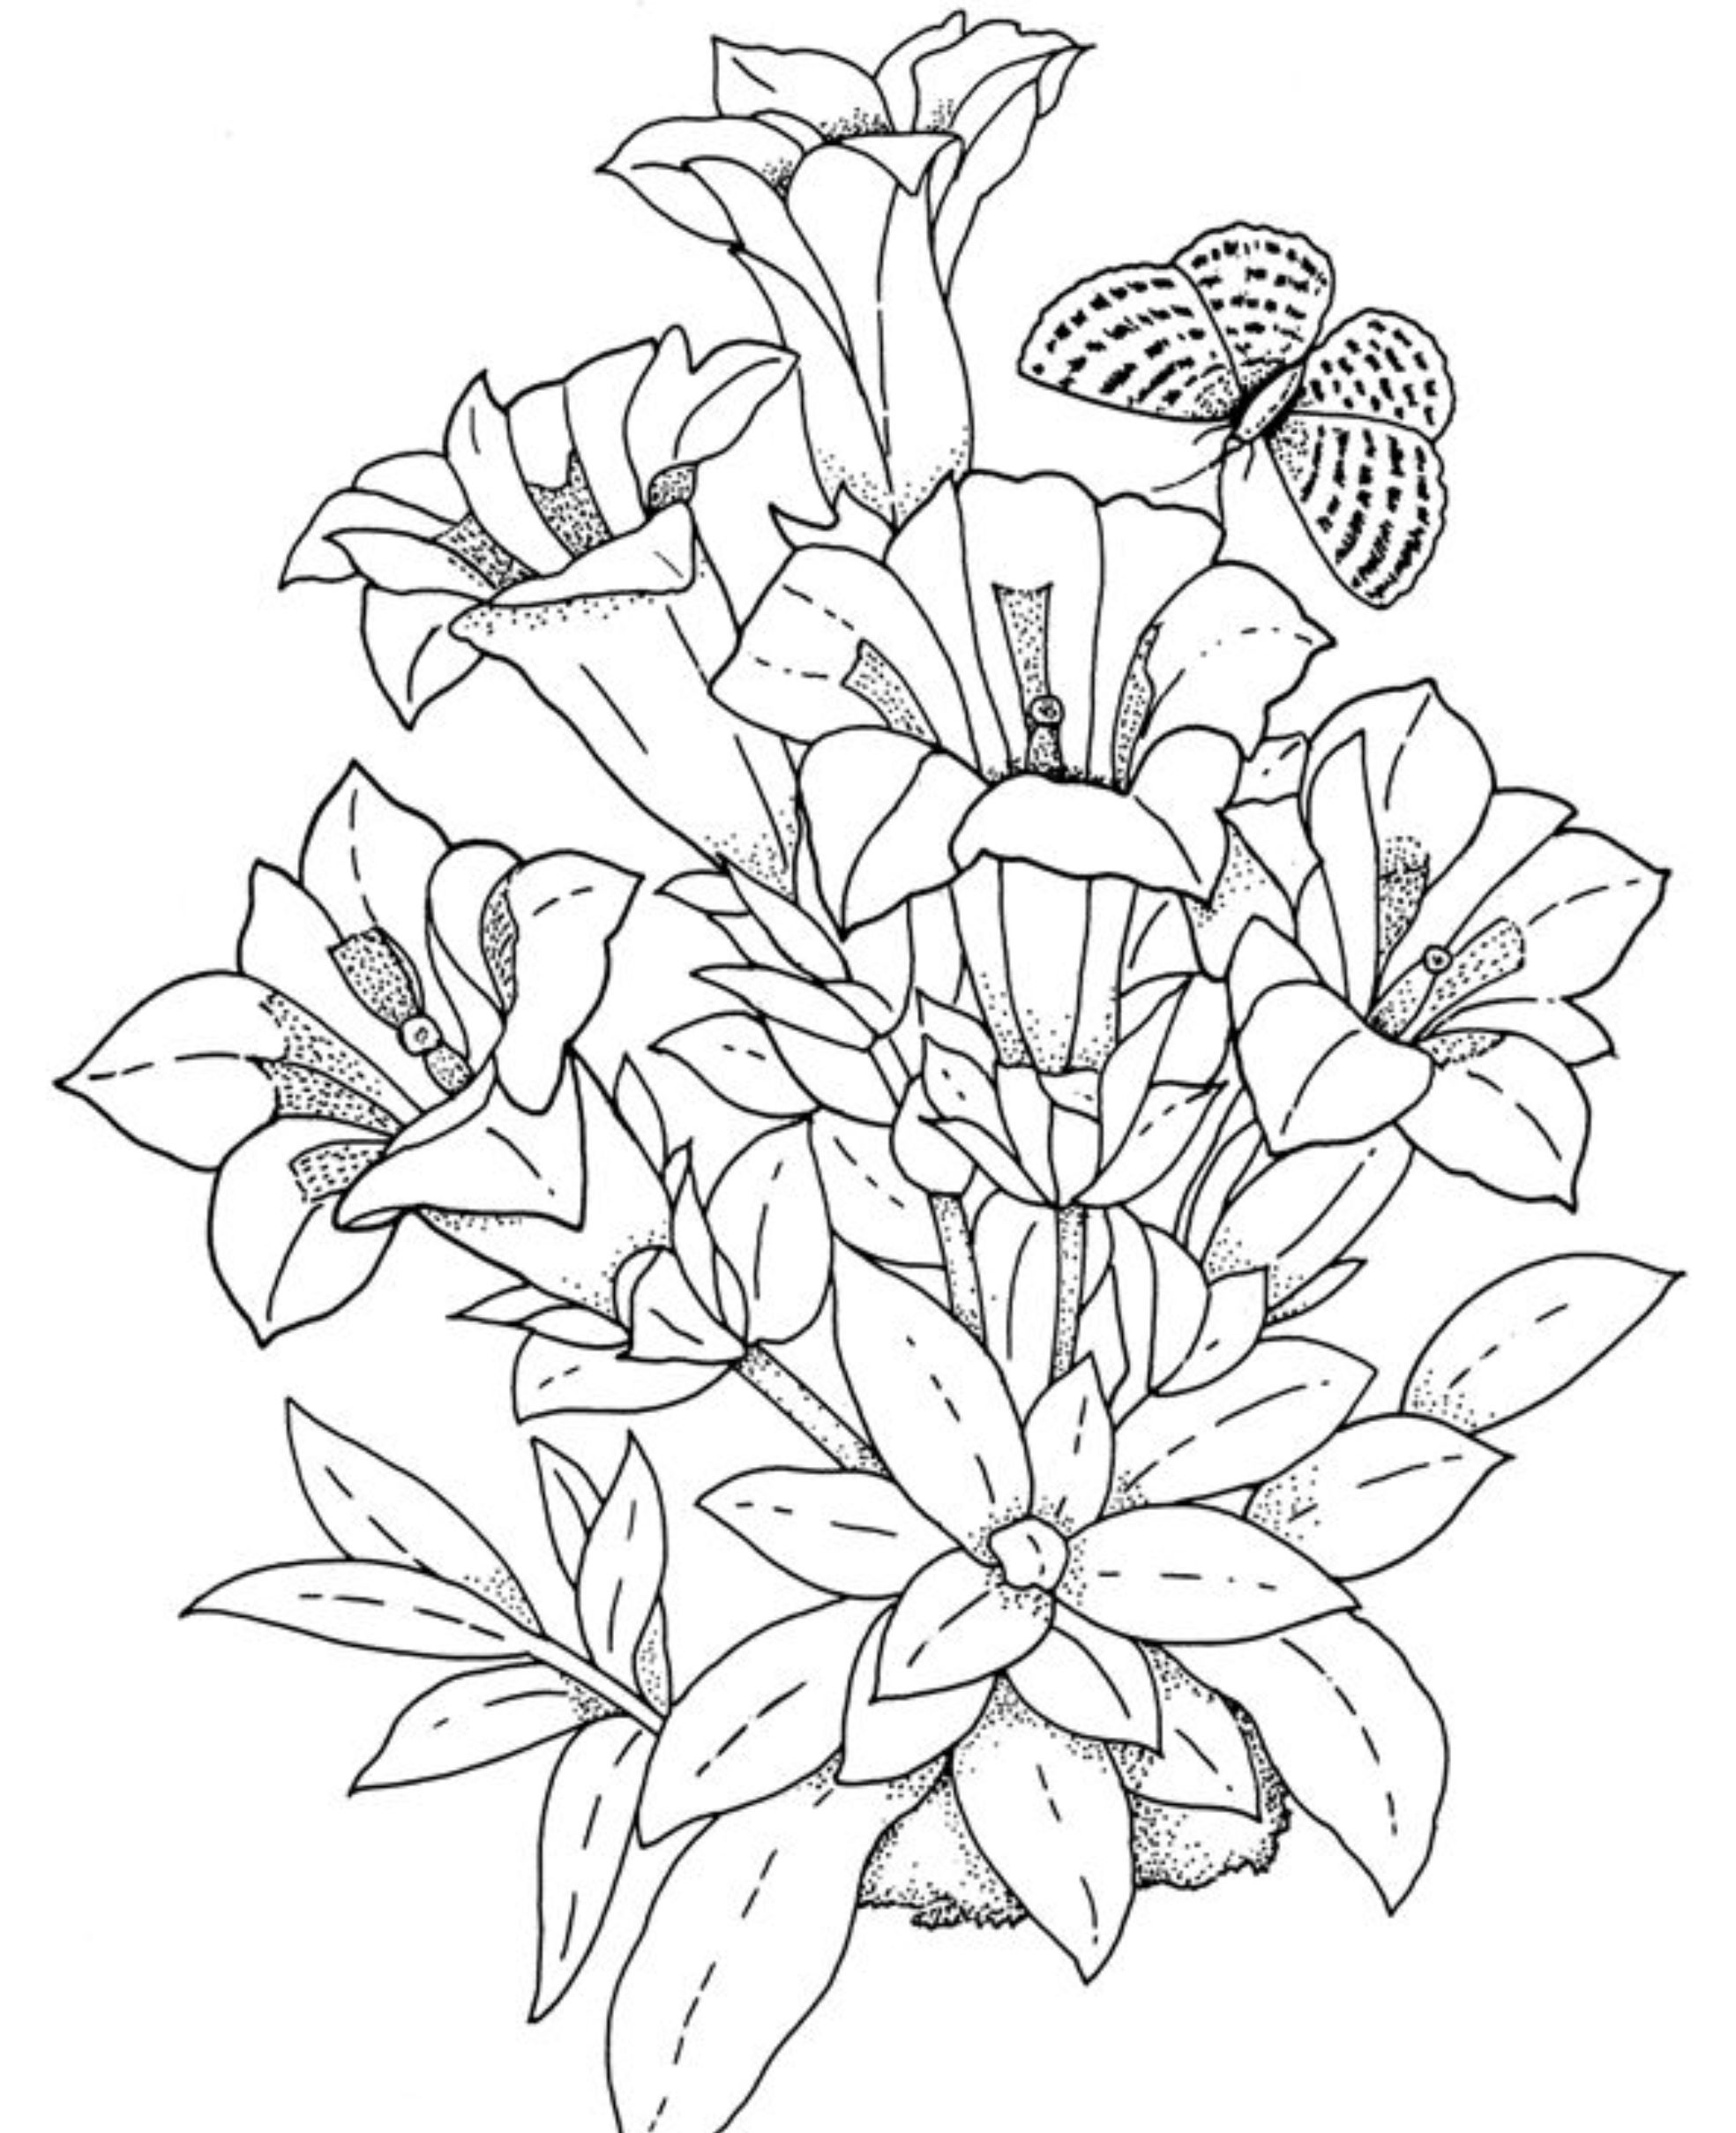 Flower coloring in pages - Download And Print Realistic Flowers Coloring Pages